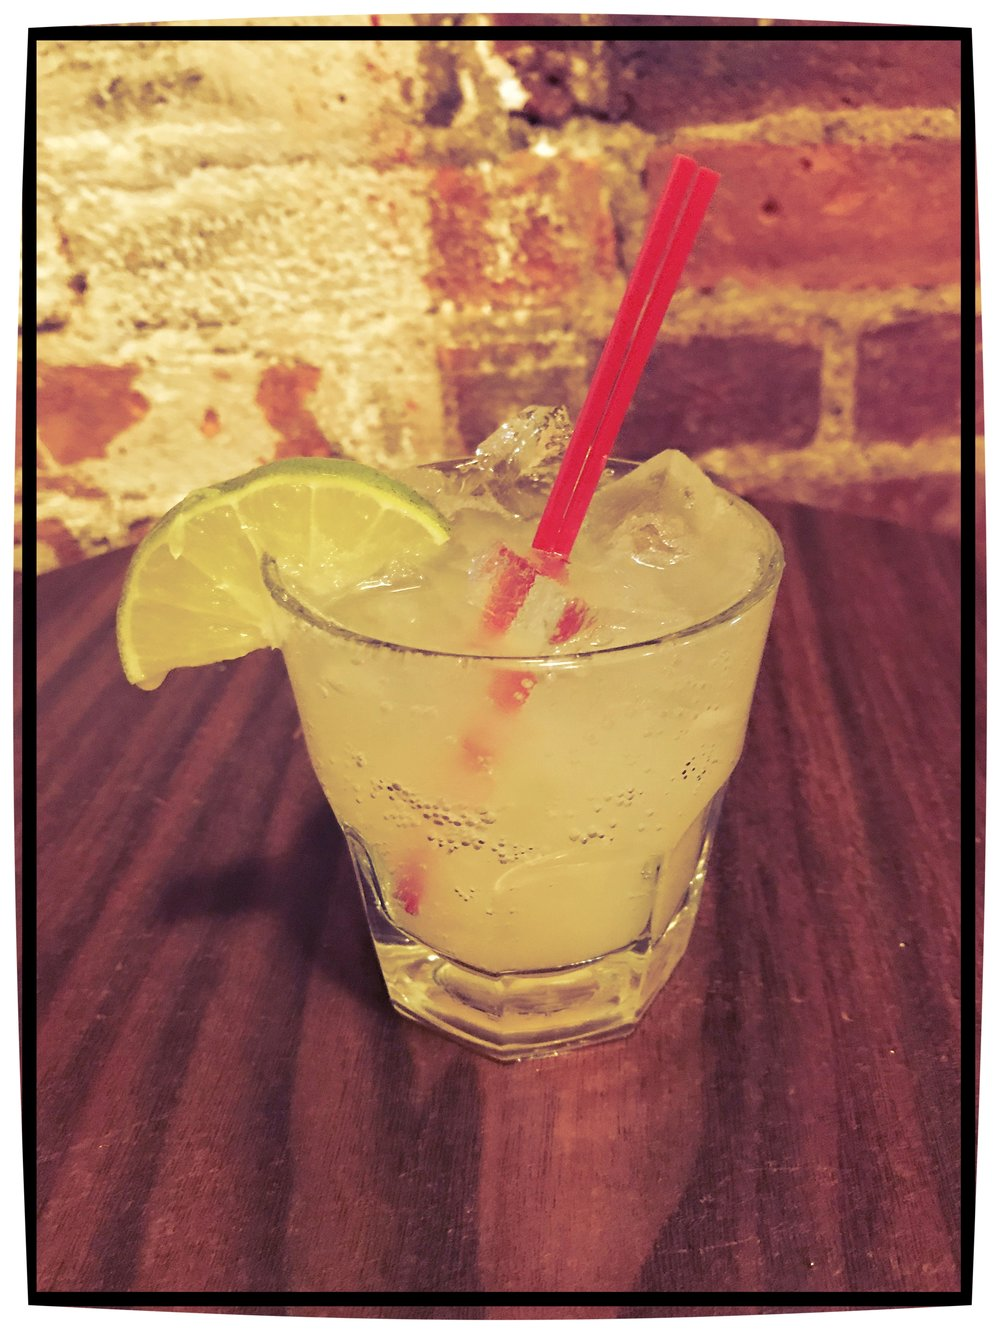 Ralph's Grandma $9 - Breuckelen Glorious Gin, Elderflower Liqueur,Hint of Sour, Dash of Grapefruit, Burst of Soda